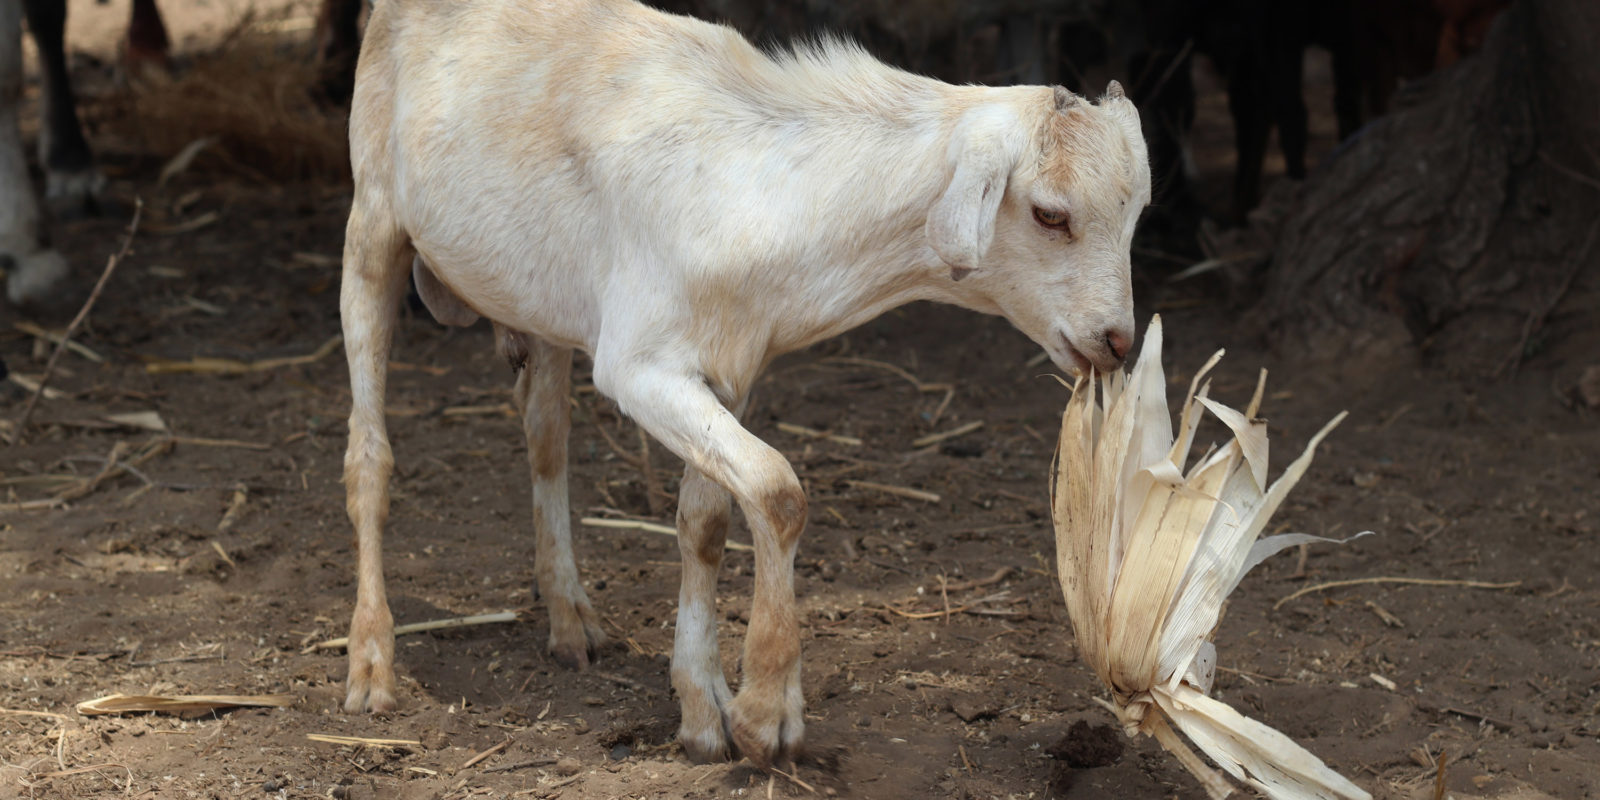 Goat affected by natural catastrophe (drought) in Tanzania